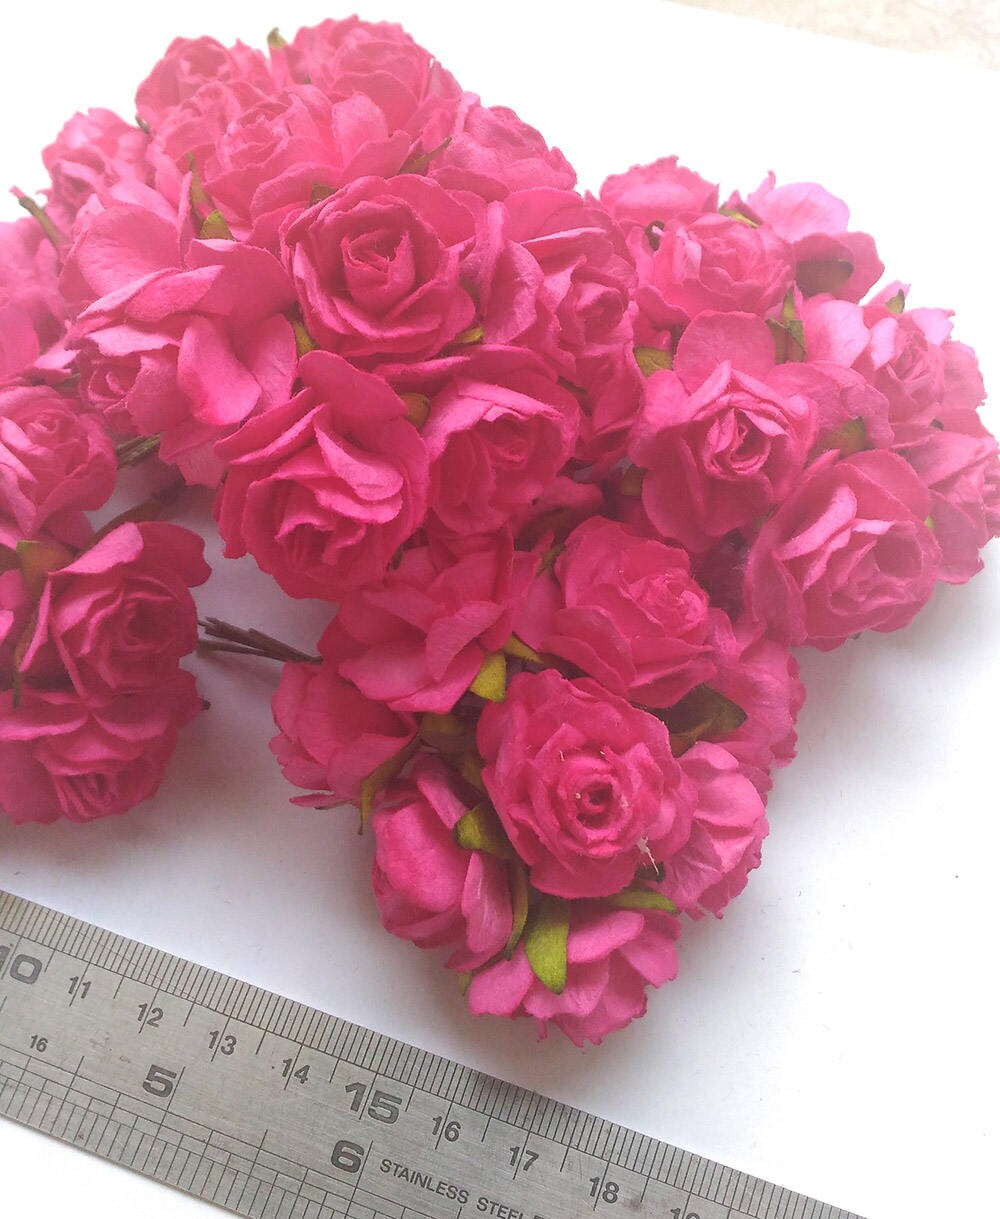 50 Big Hot Pink Mulberry Roses Paper Flowers Size 3 Cm Etsy